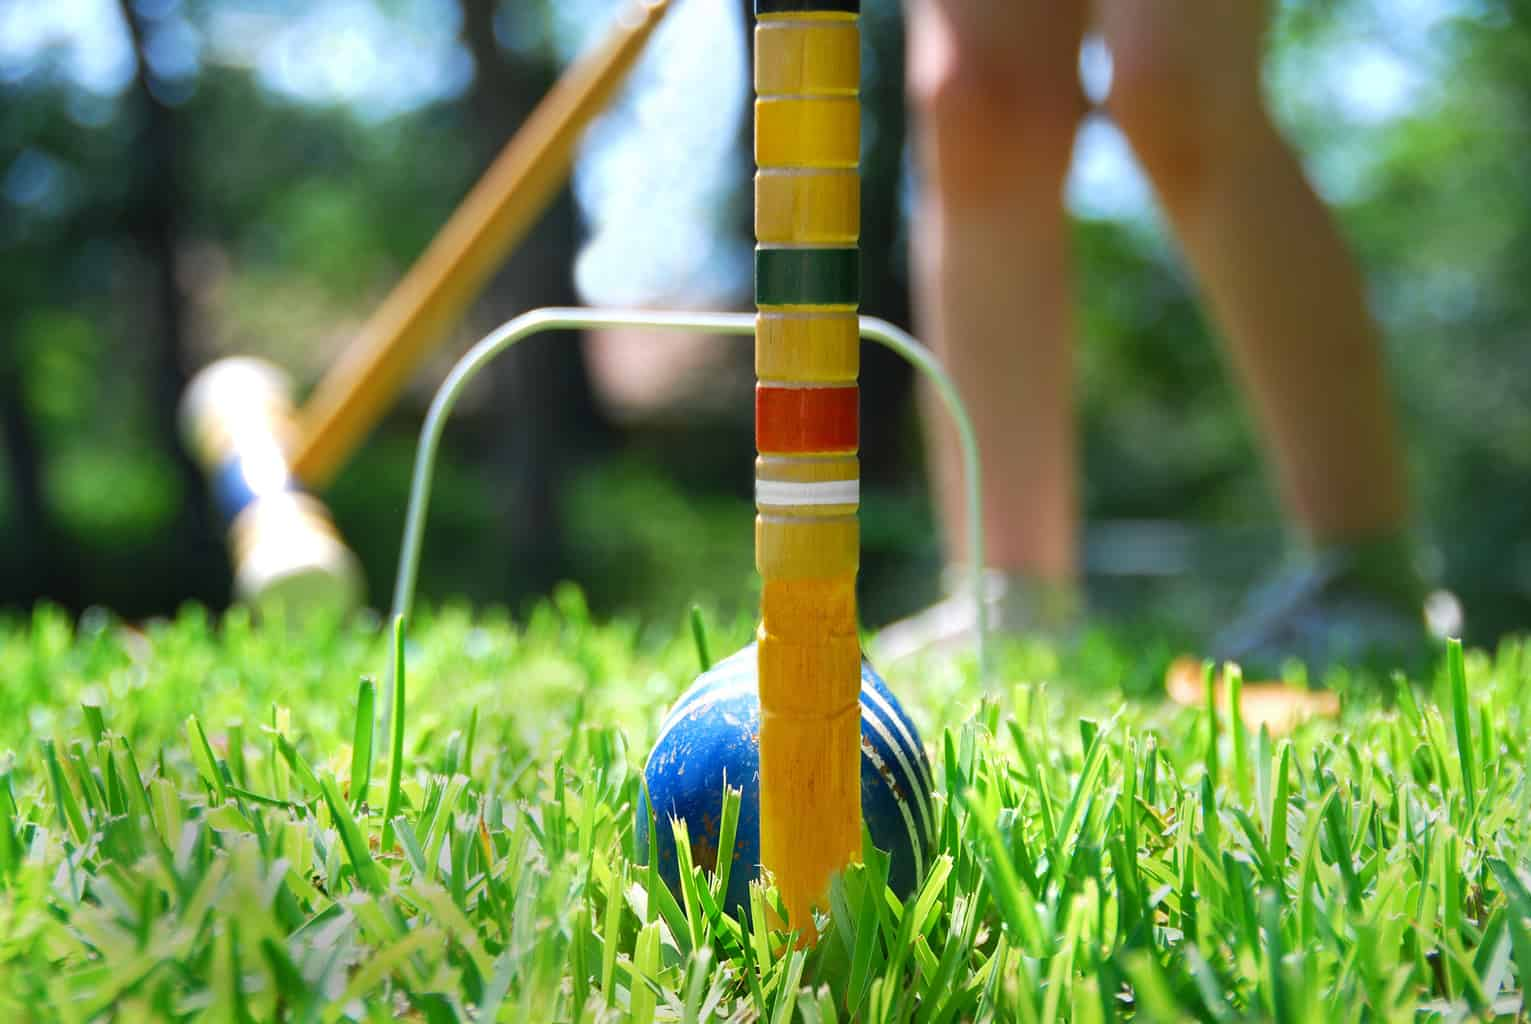 history of croquet